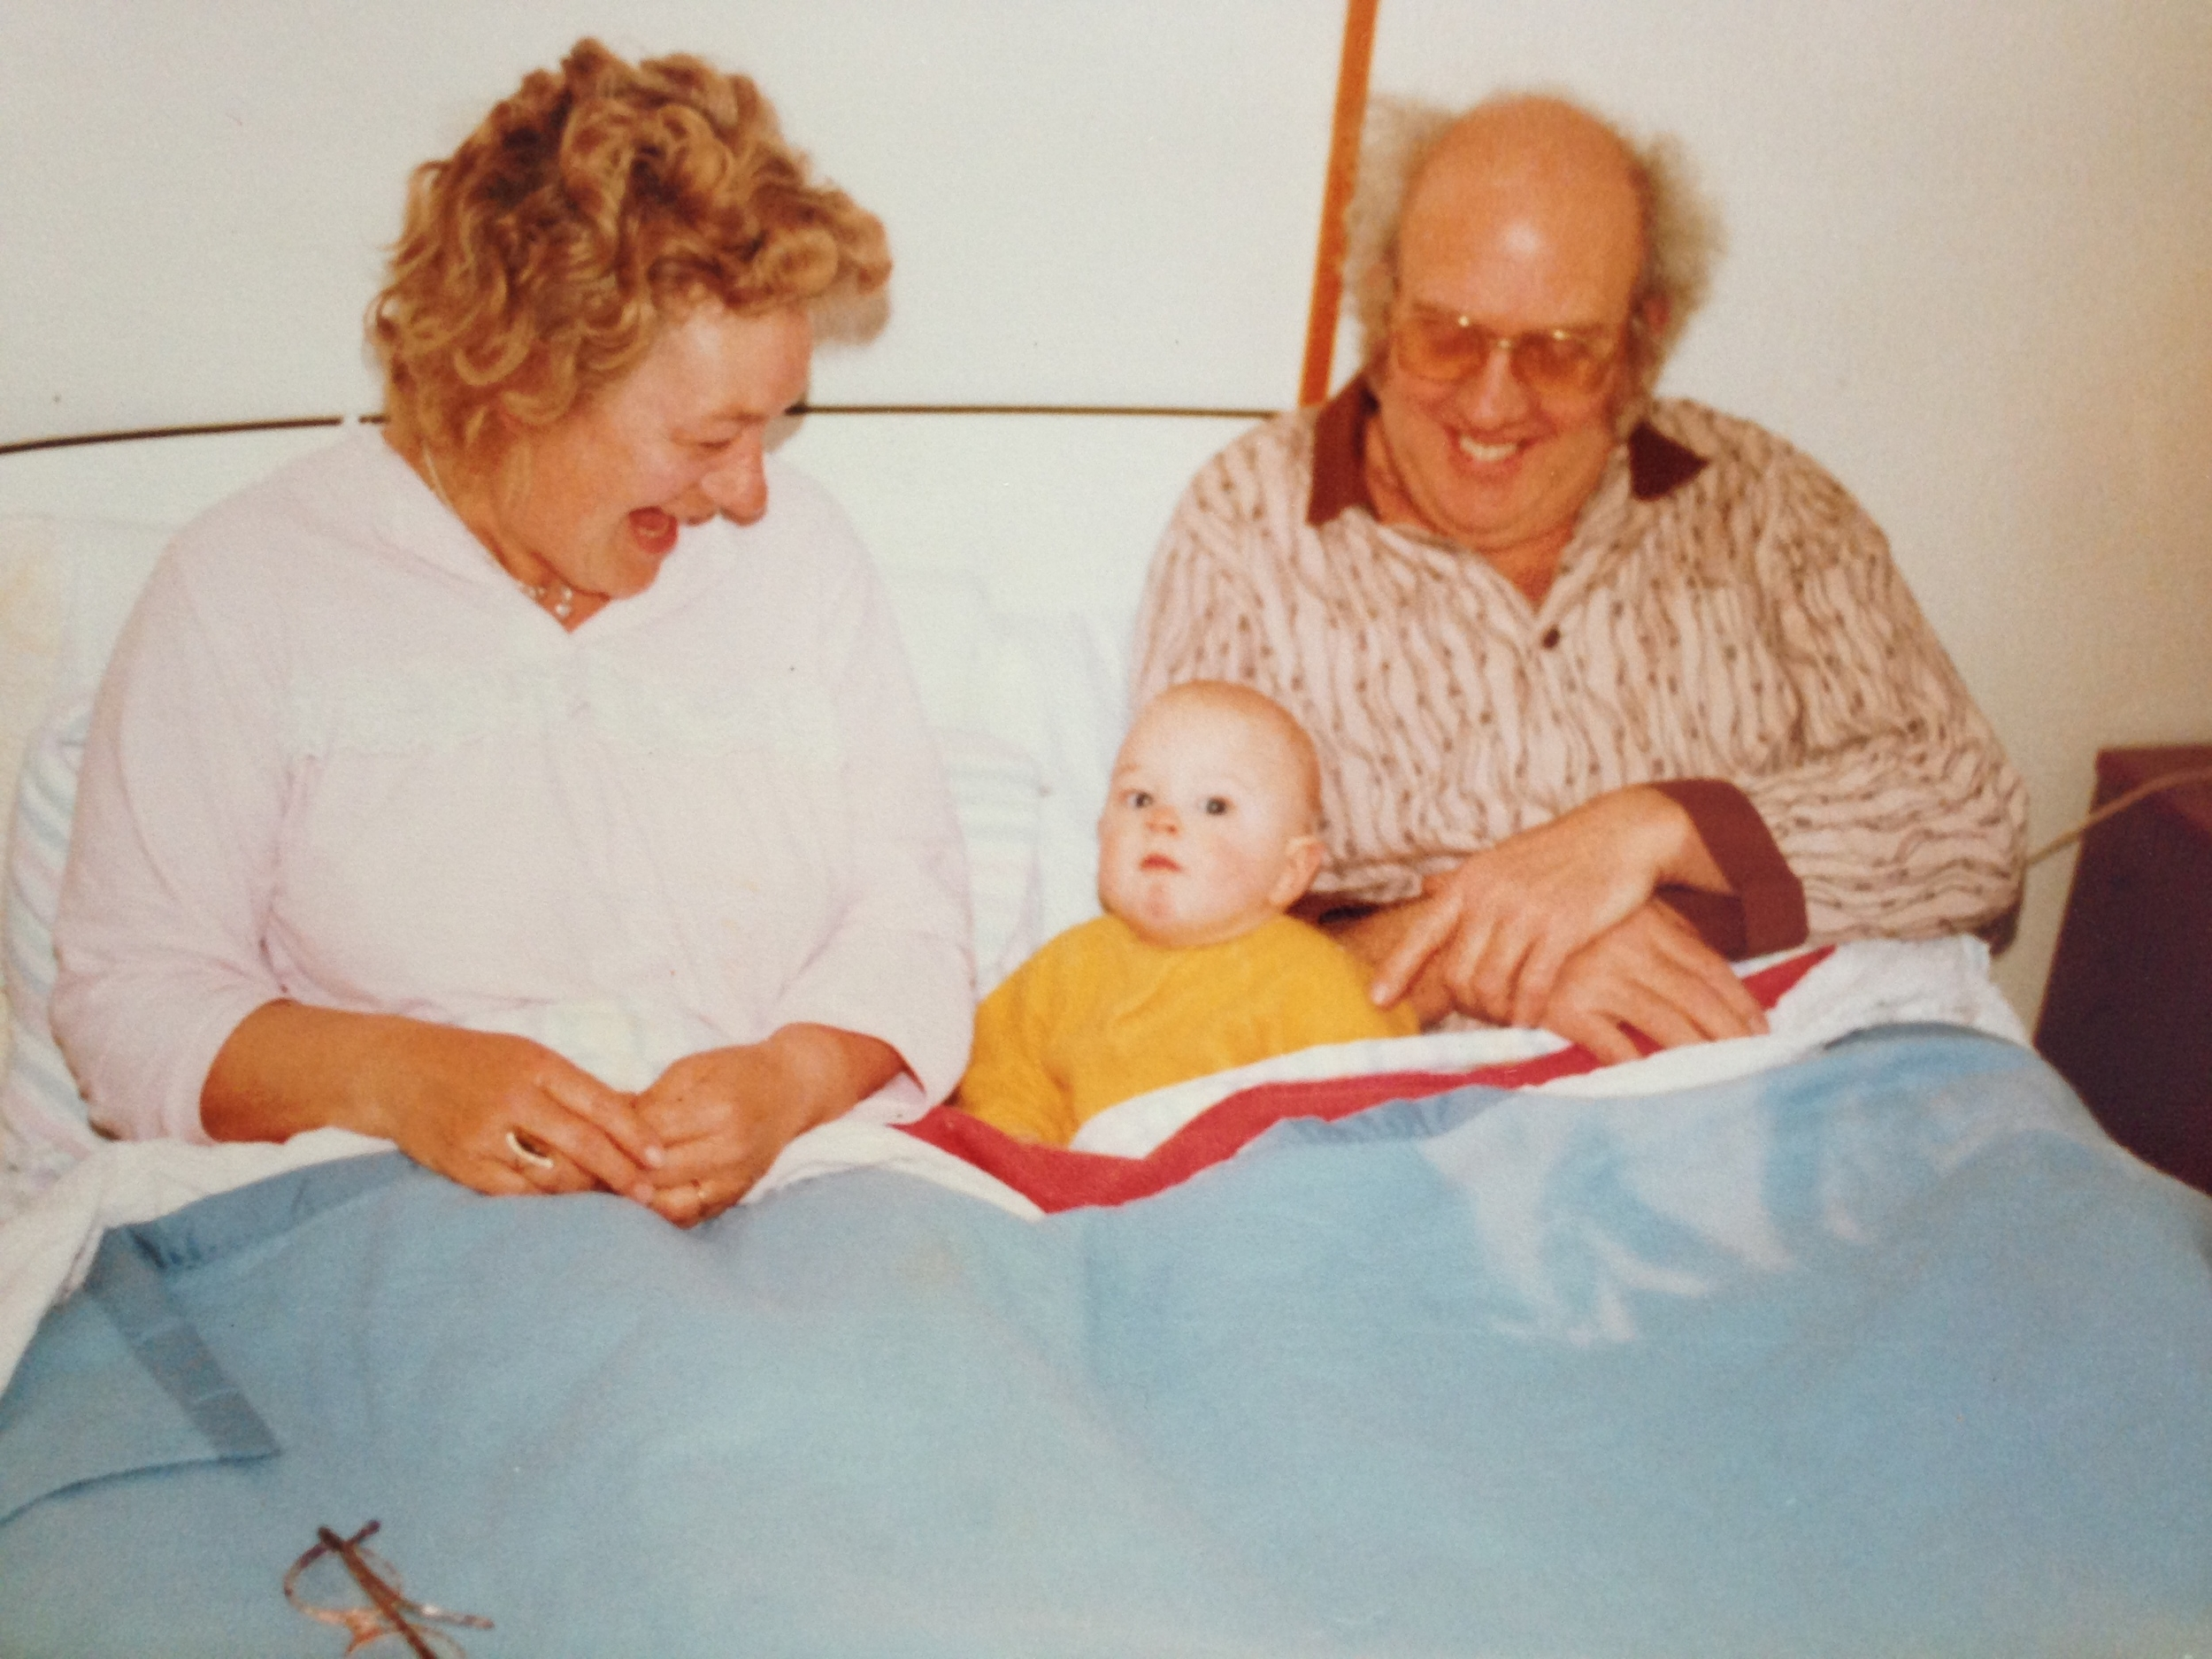 Self-portrait with Grandparents. Abersoch, c.1980.